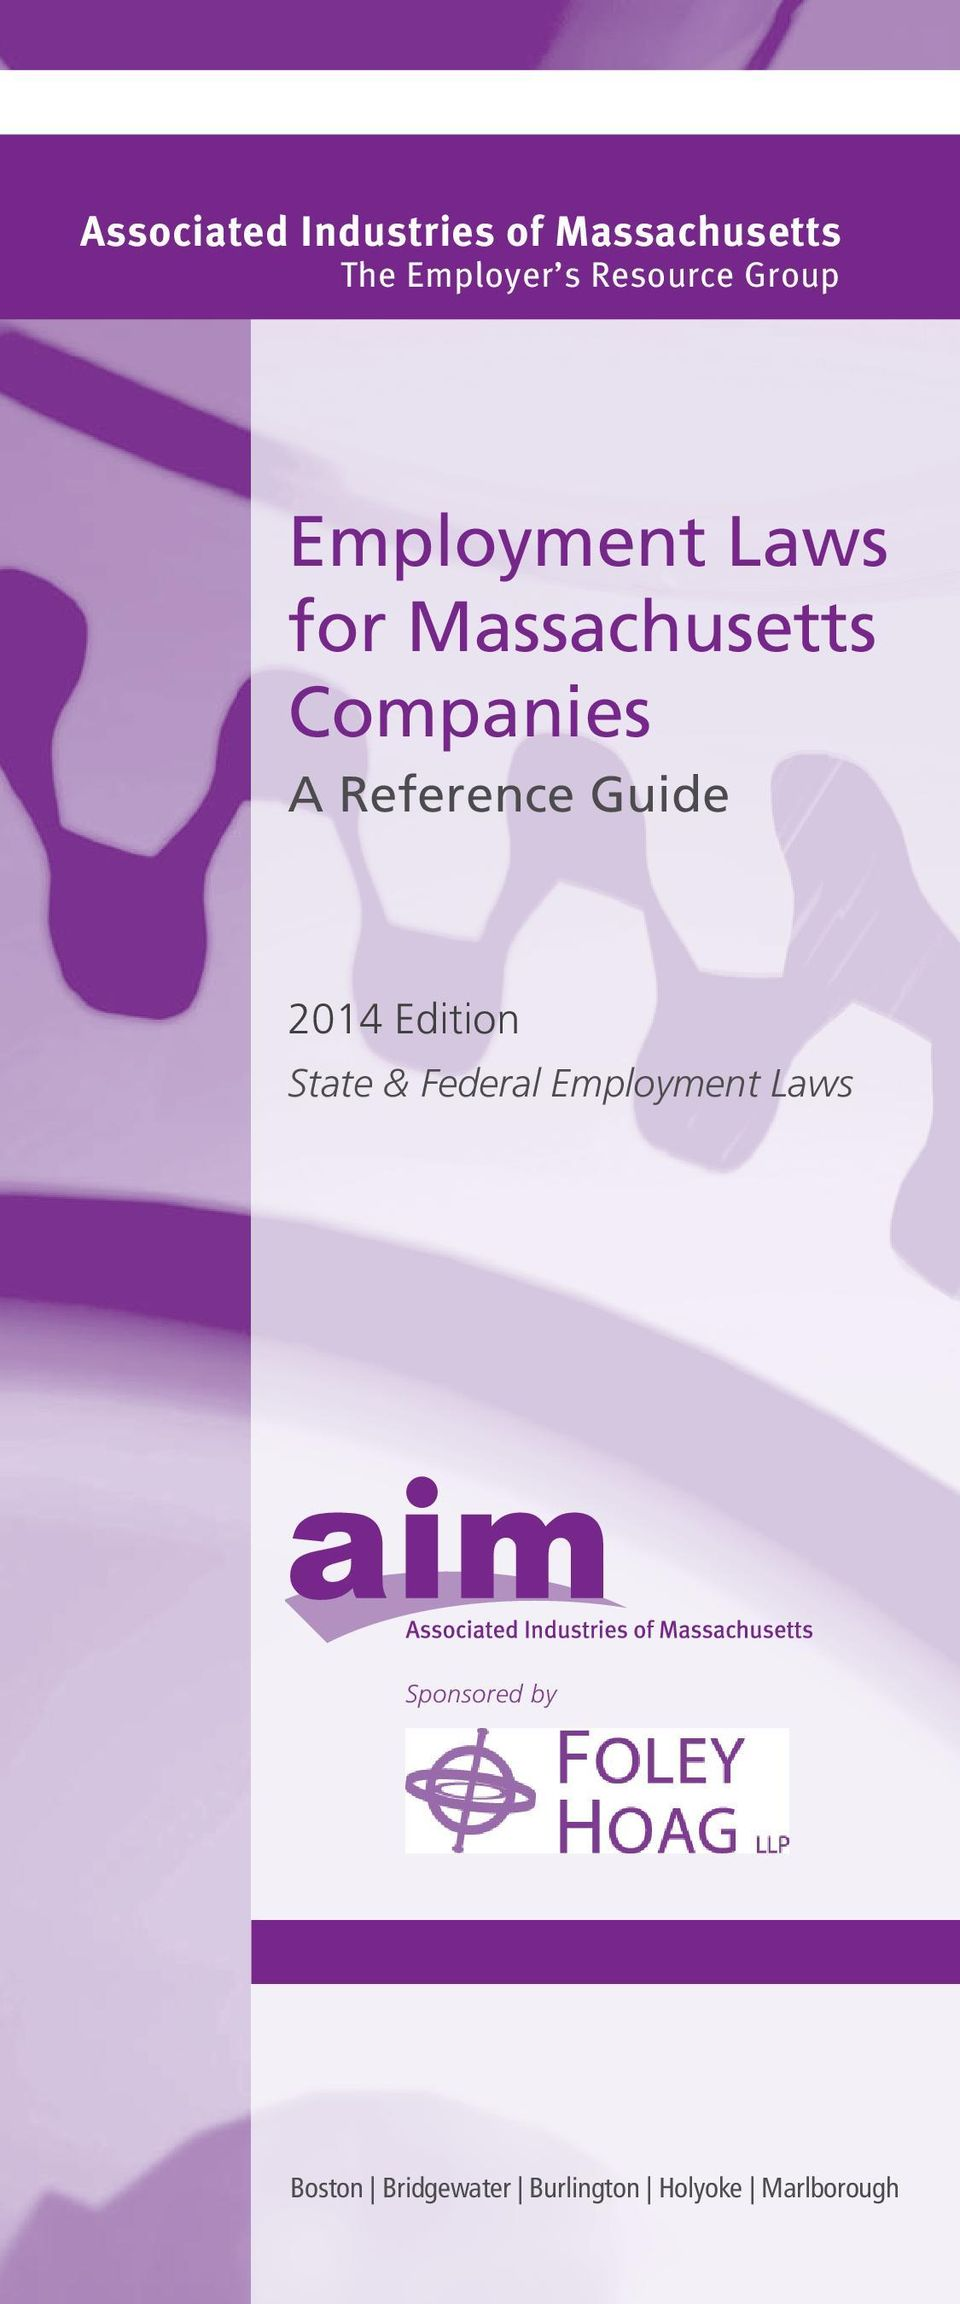 A Reference Guide 2014 Edition State & Federal Employment